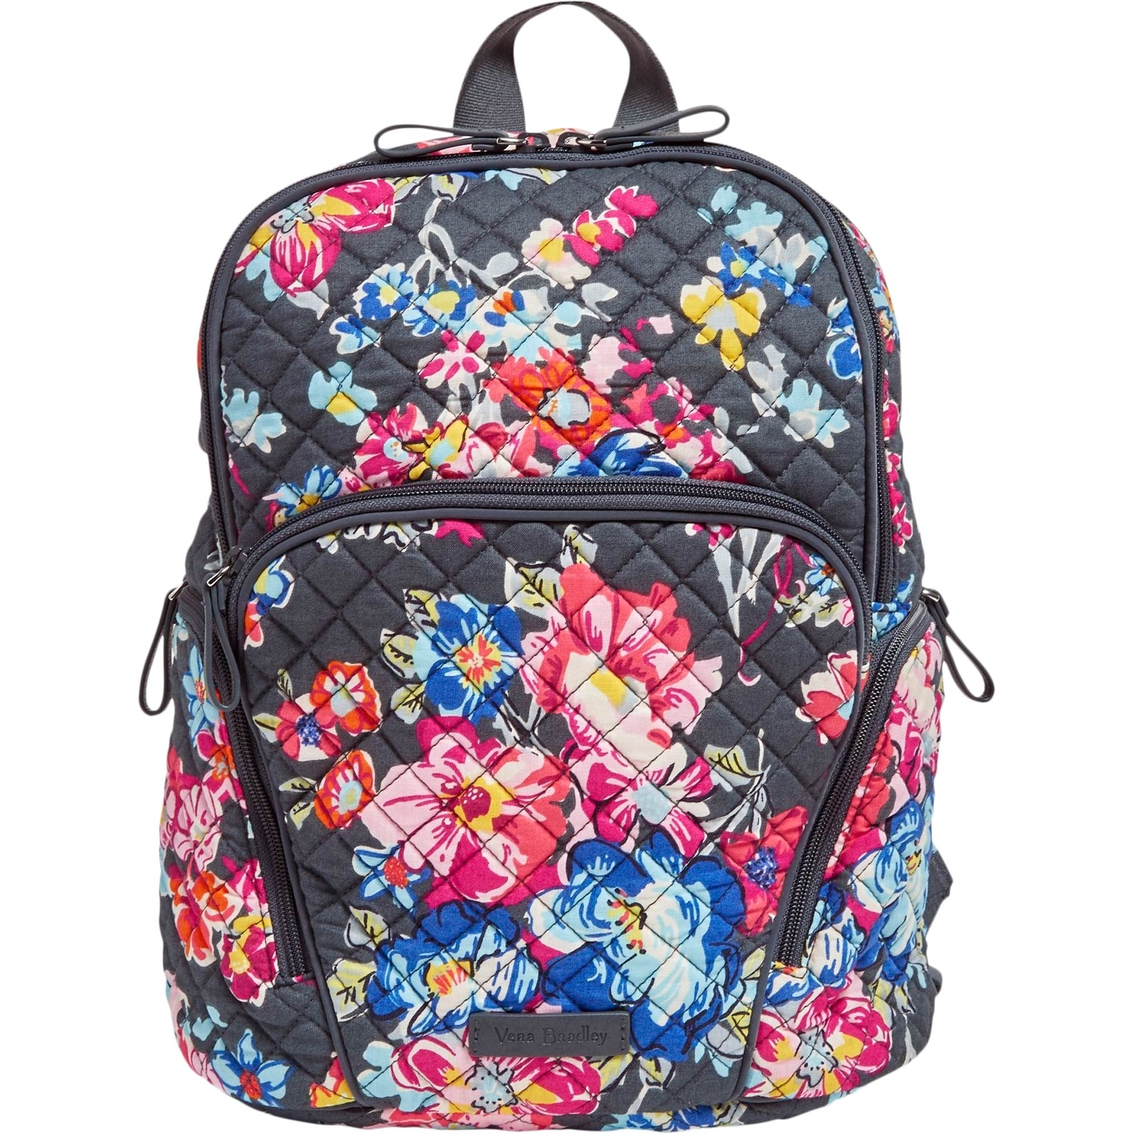 43809fec5 Vera Bradley Hadley Backpack, Pretty Posies | Backpacks | More ...